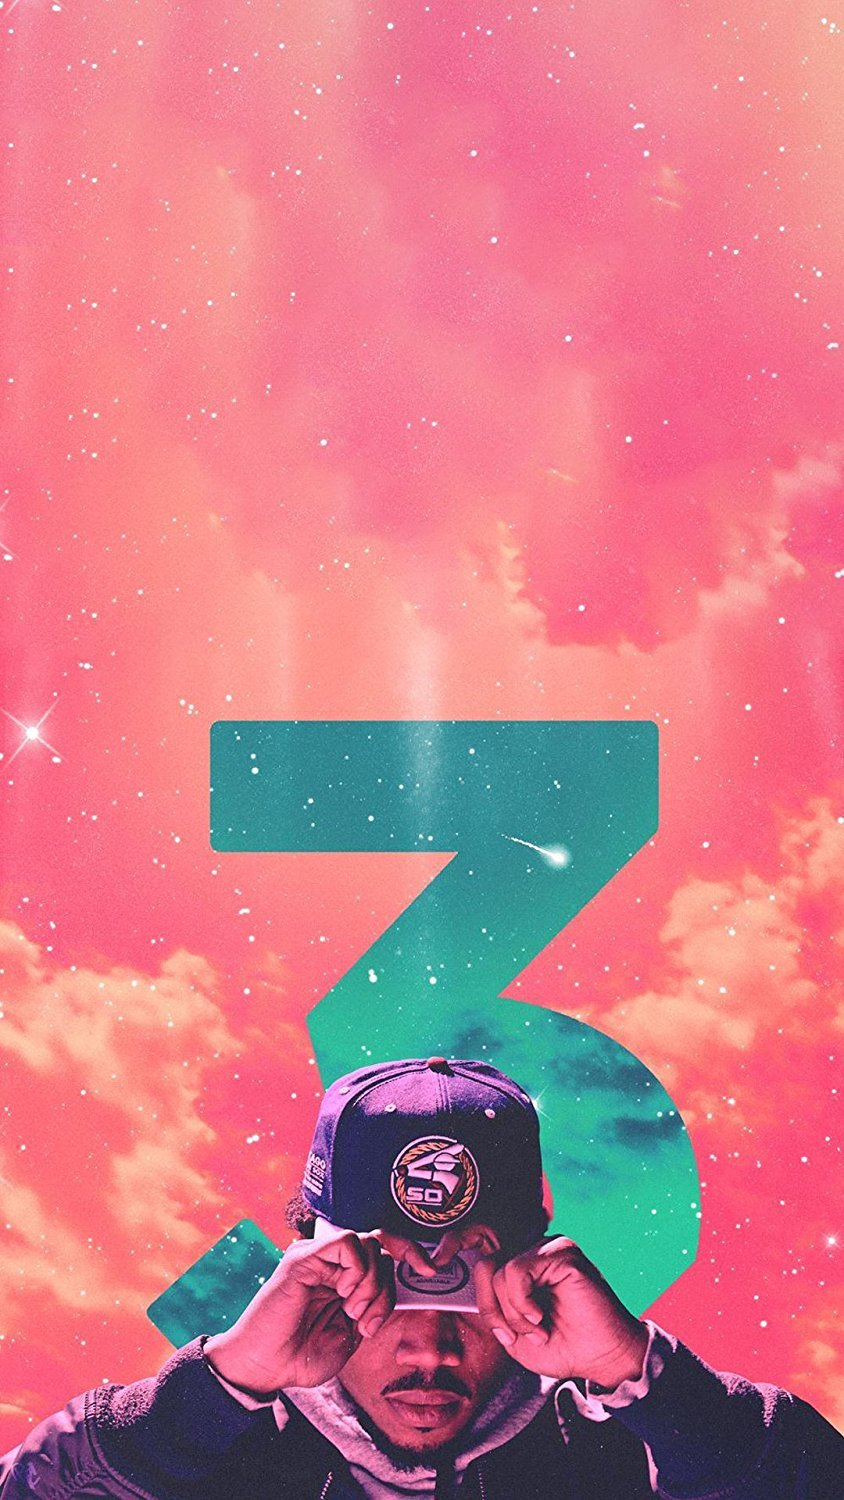 Amazoncom Chance The Rapper Acid Rap Poster Print By Go Awesome